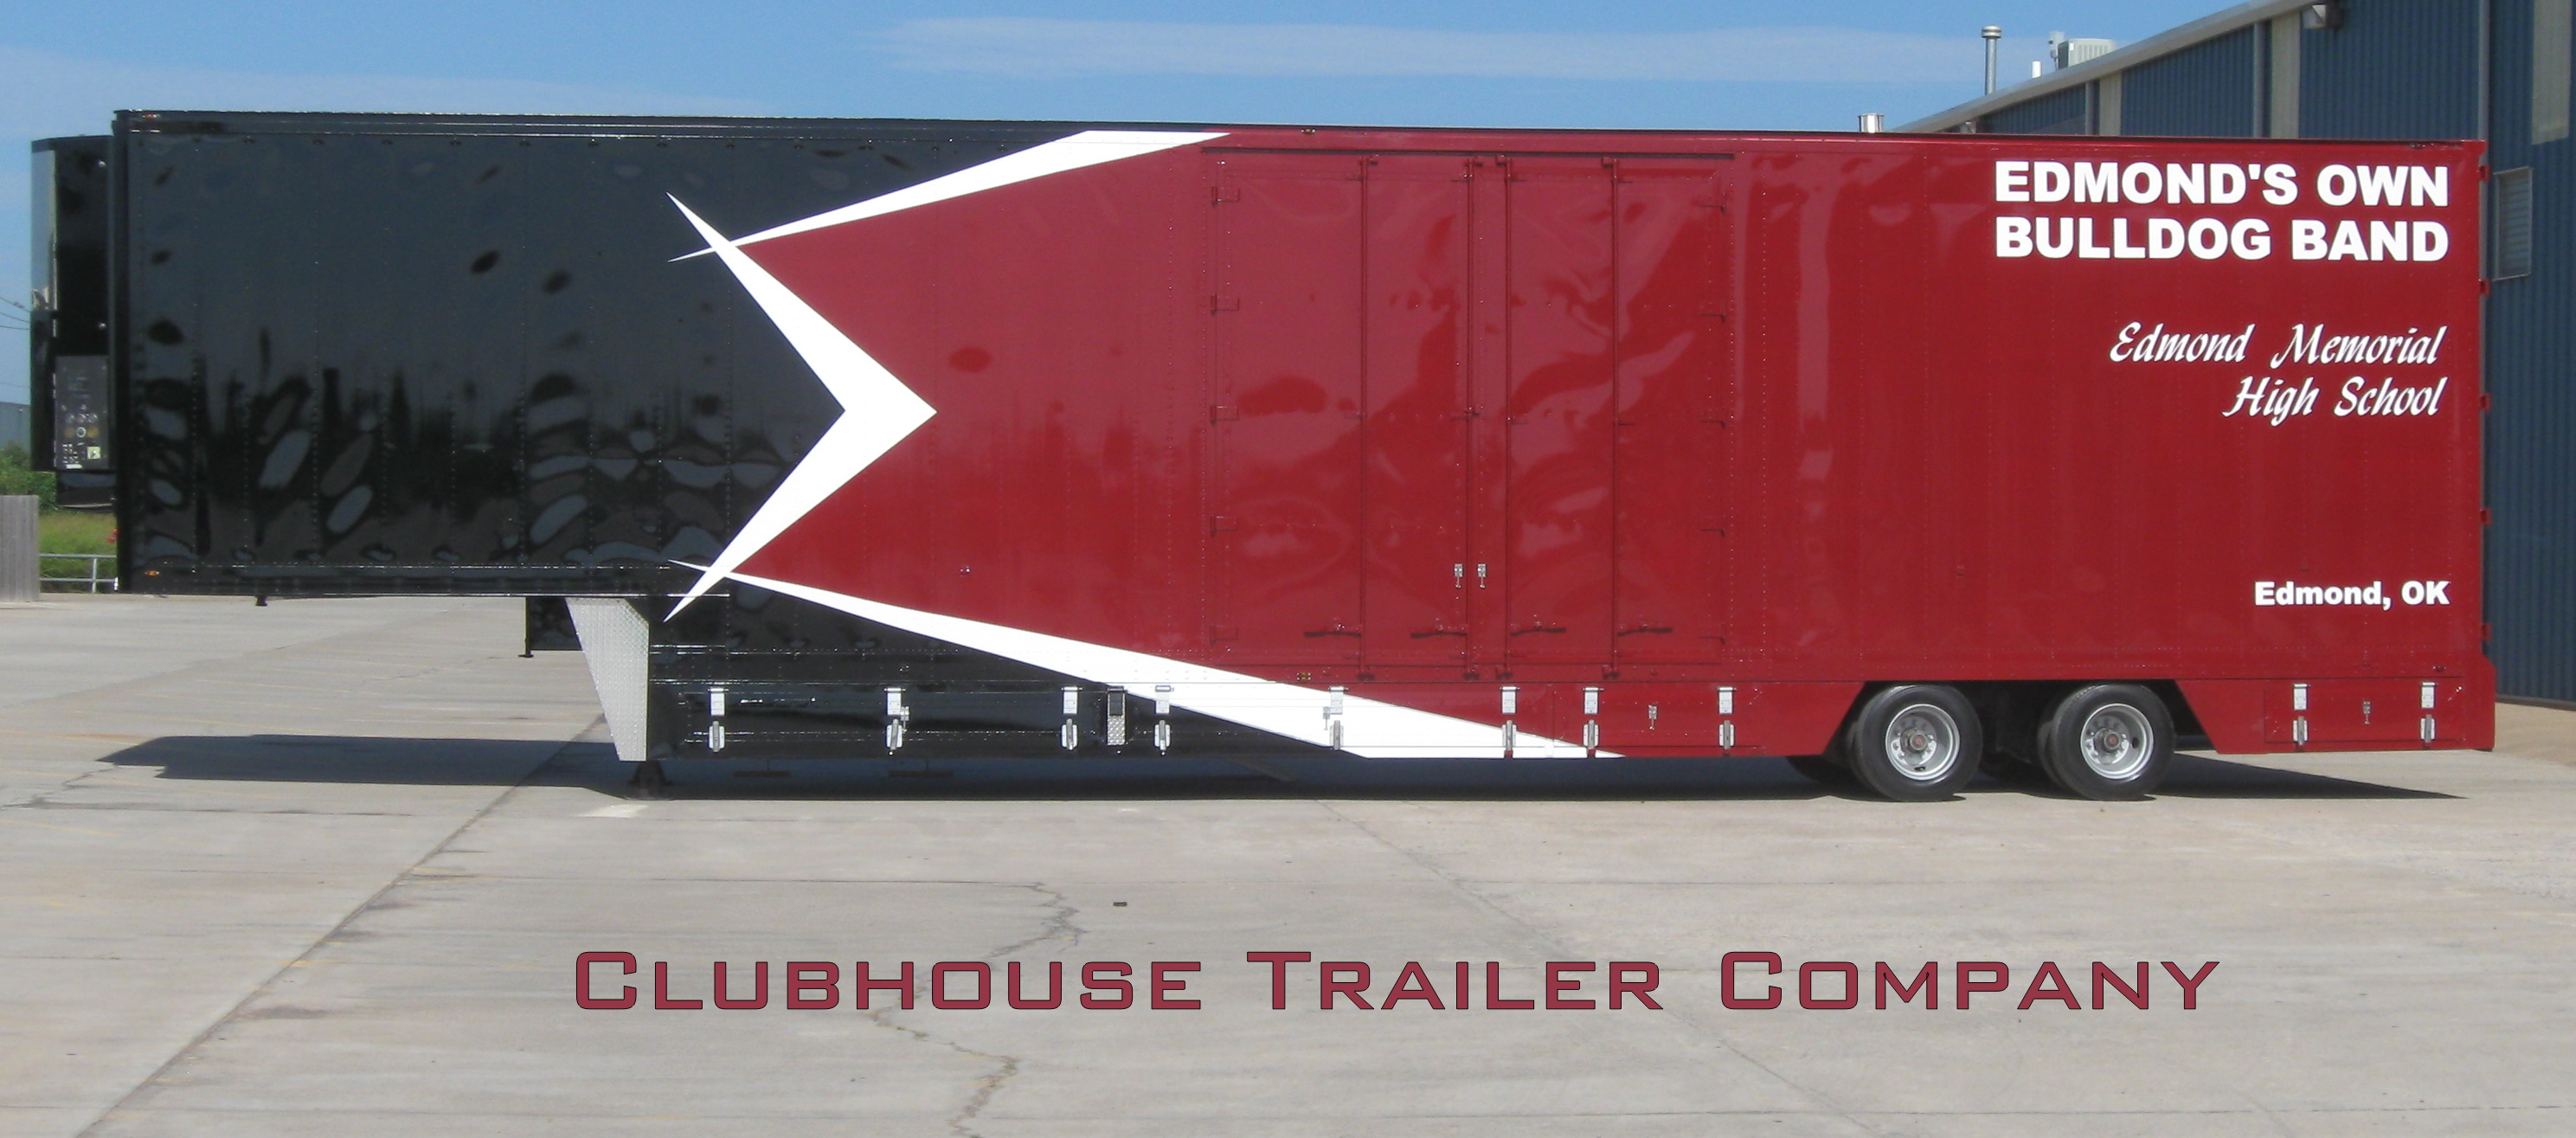 Bulldog One – Clubhouse Trailer Company